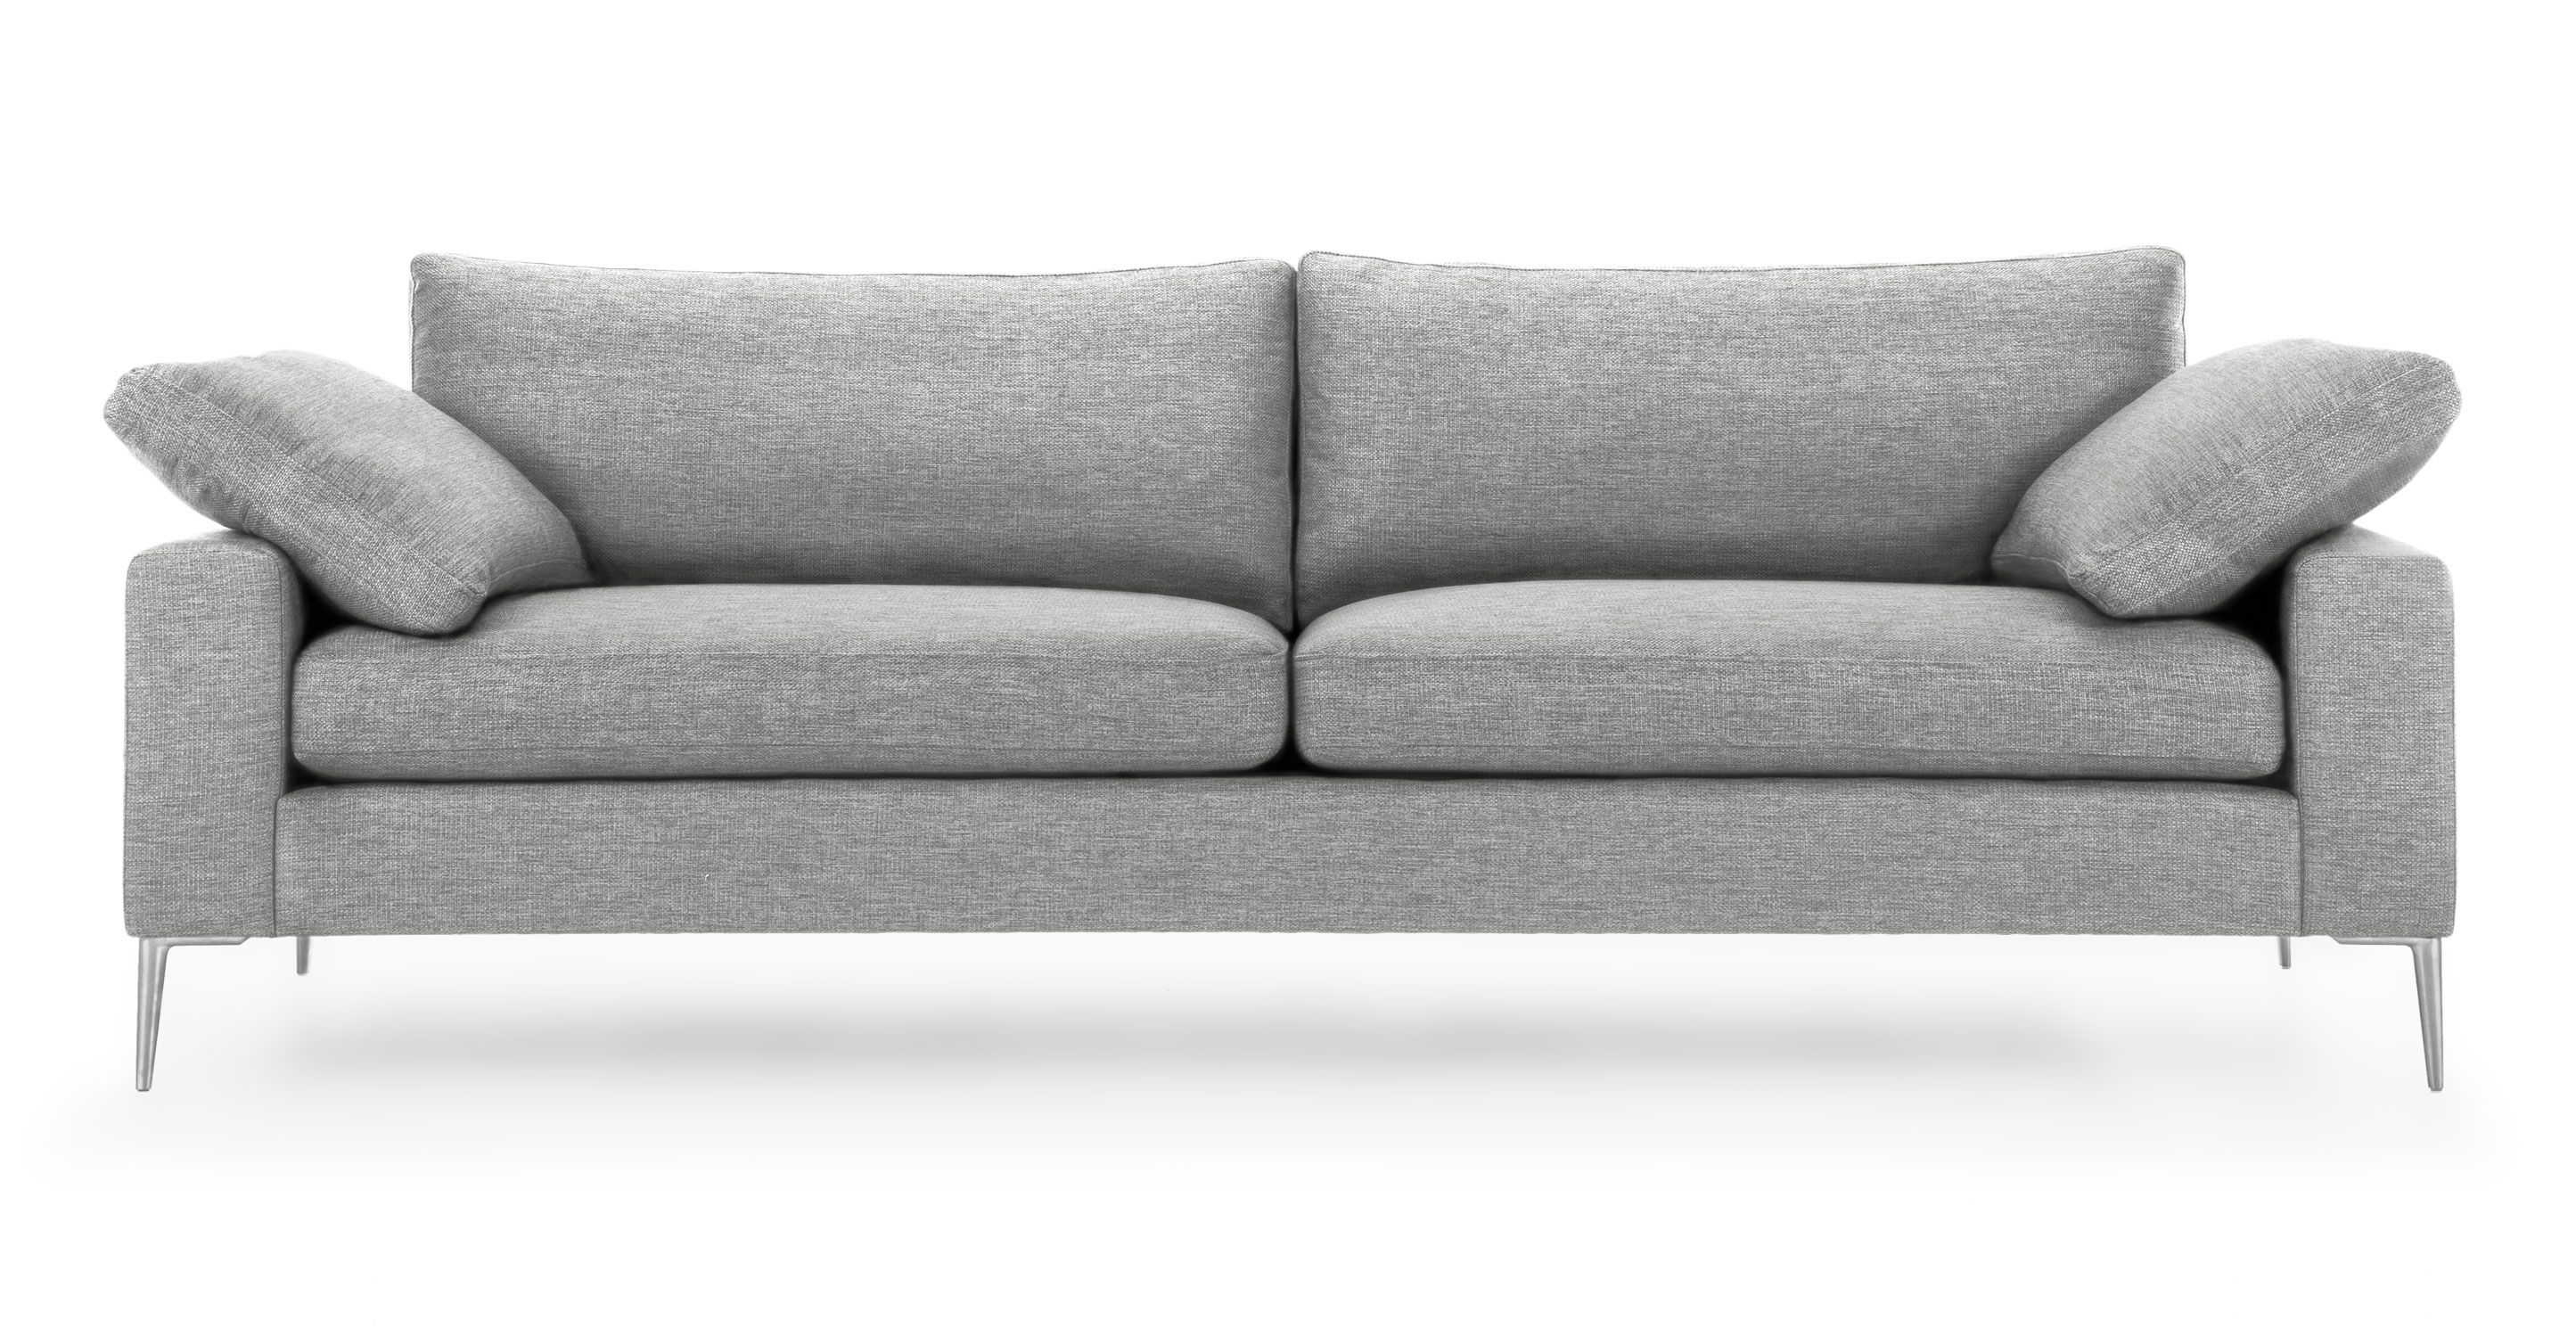 Nova Winter Gray Sofa Scandinavian Furniture Comfortable Sofa Mid Century Modern Sofa